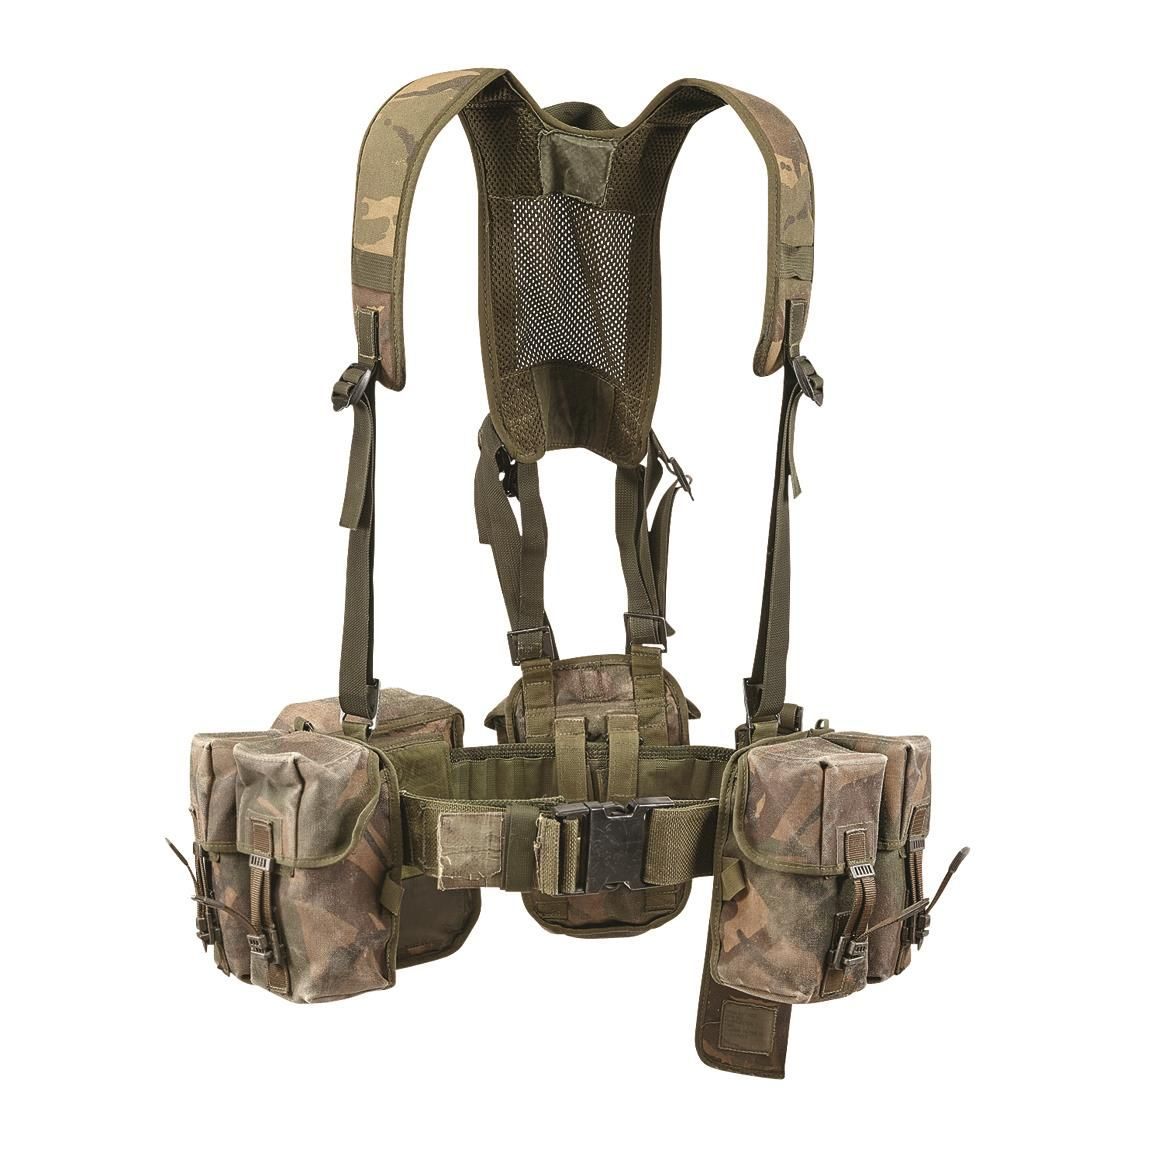 British Military Surplus 5 Pouch Load-Bearing Vest, Like New